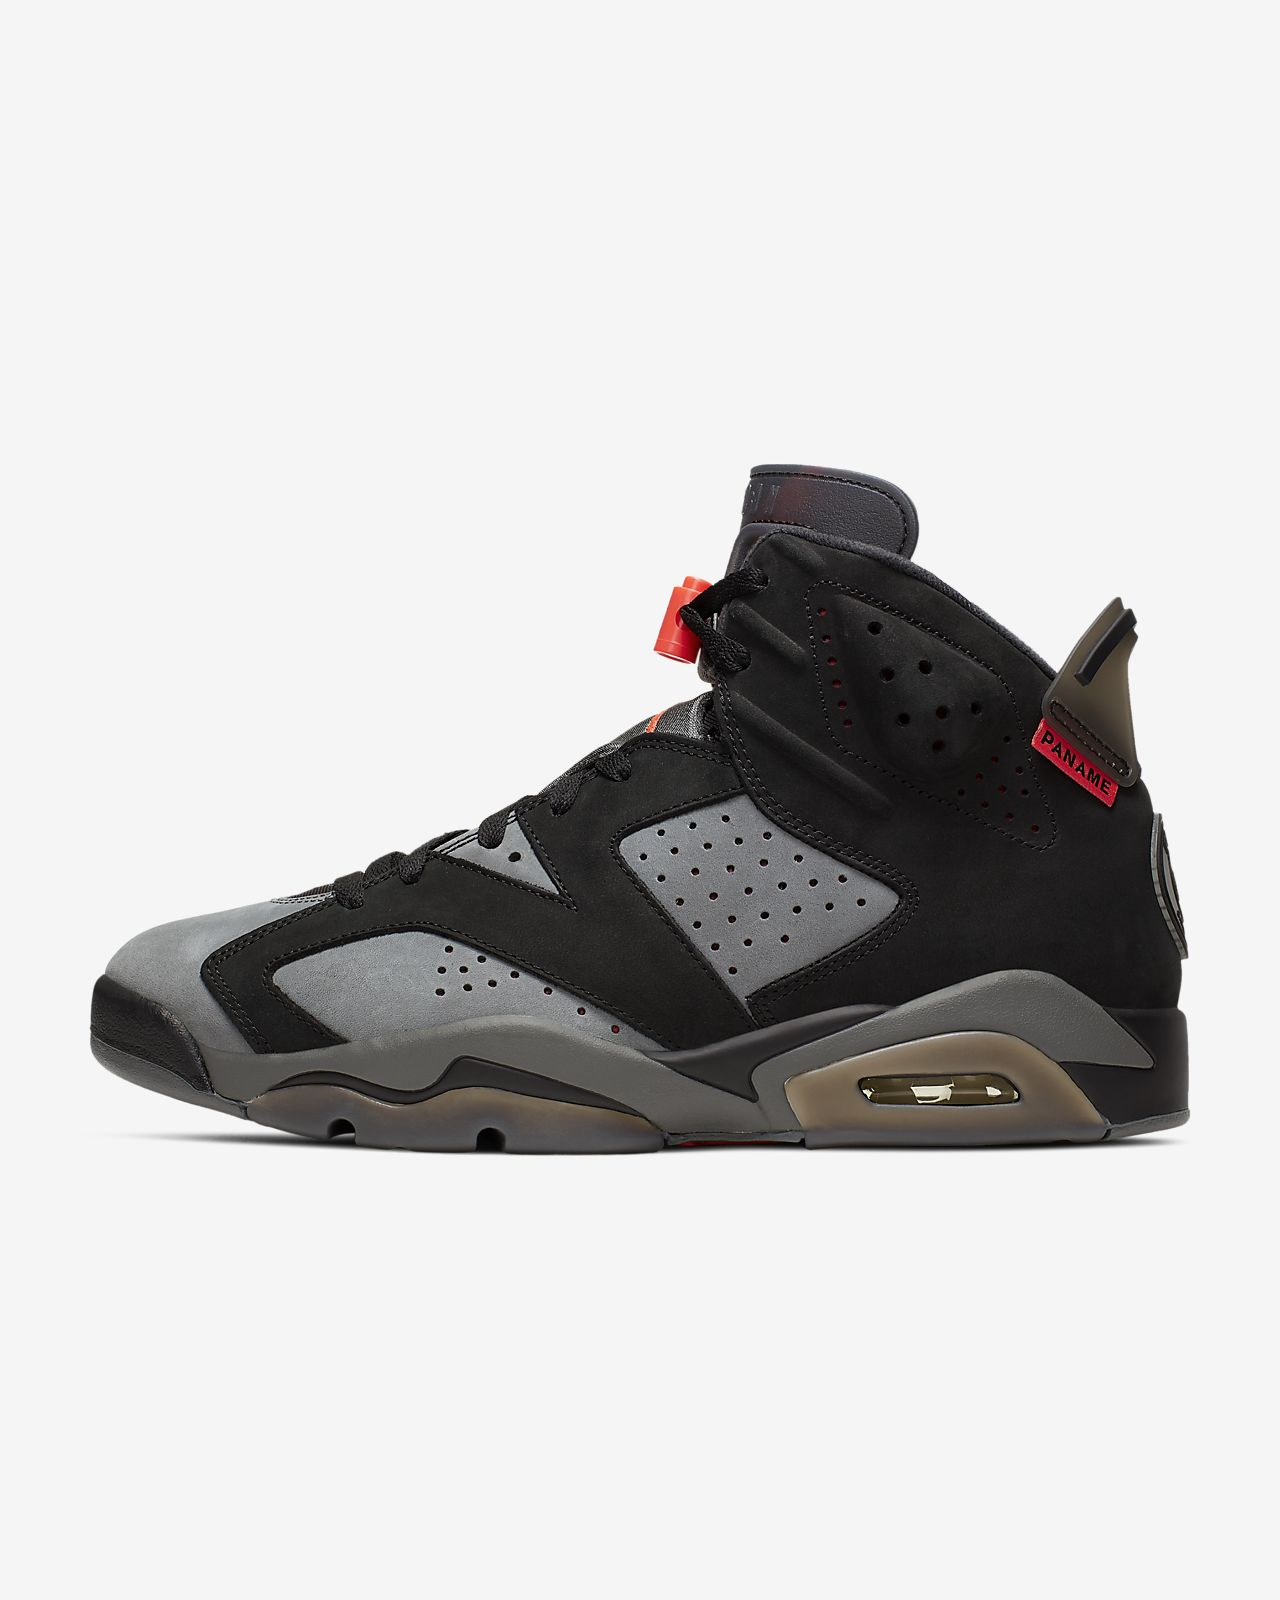 reputable site 30636 56b30 Air Jordan 6 Retro Paris Saint-Germain Men's Shoe